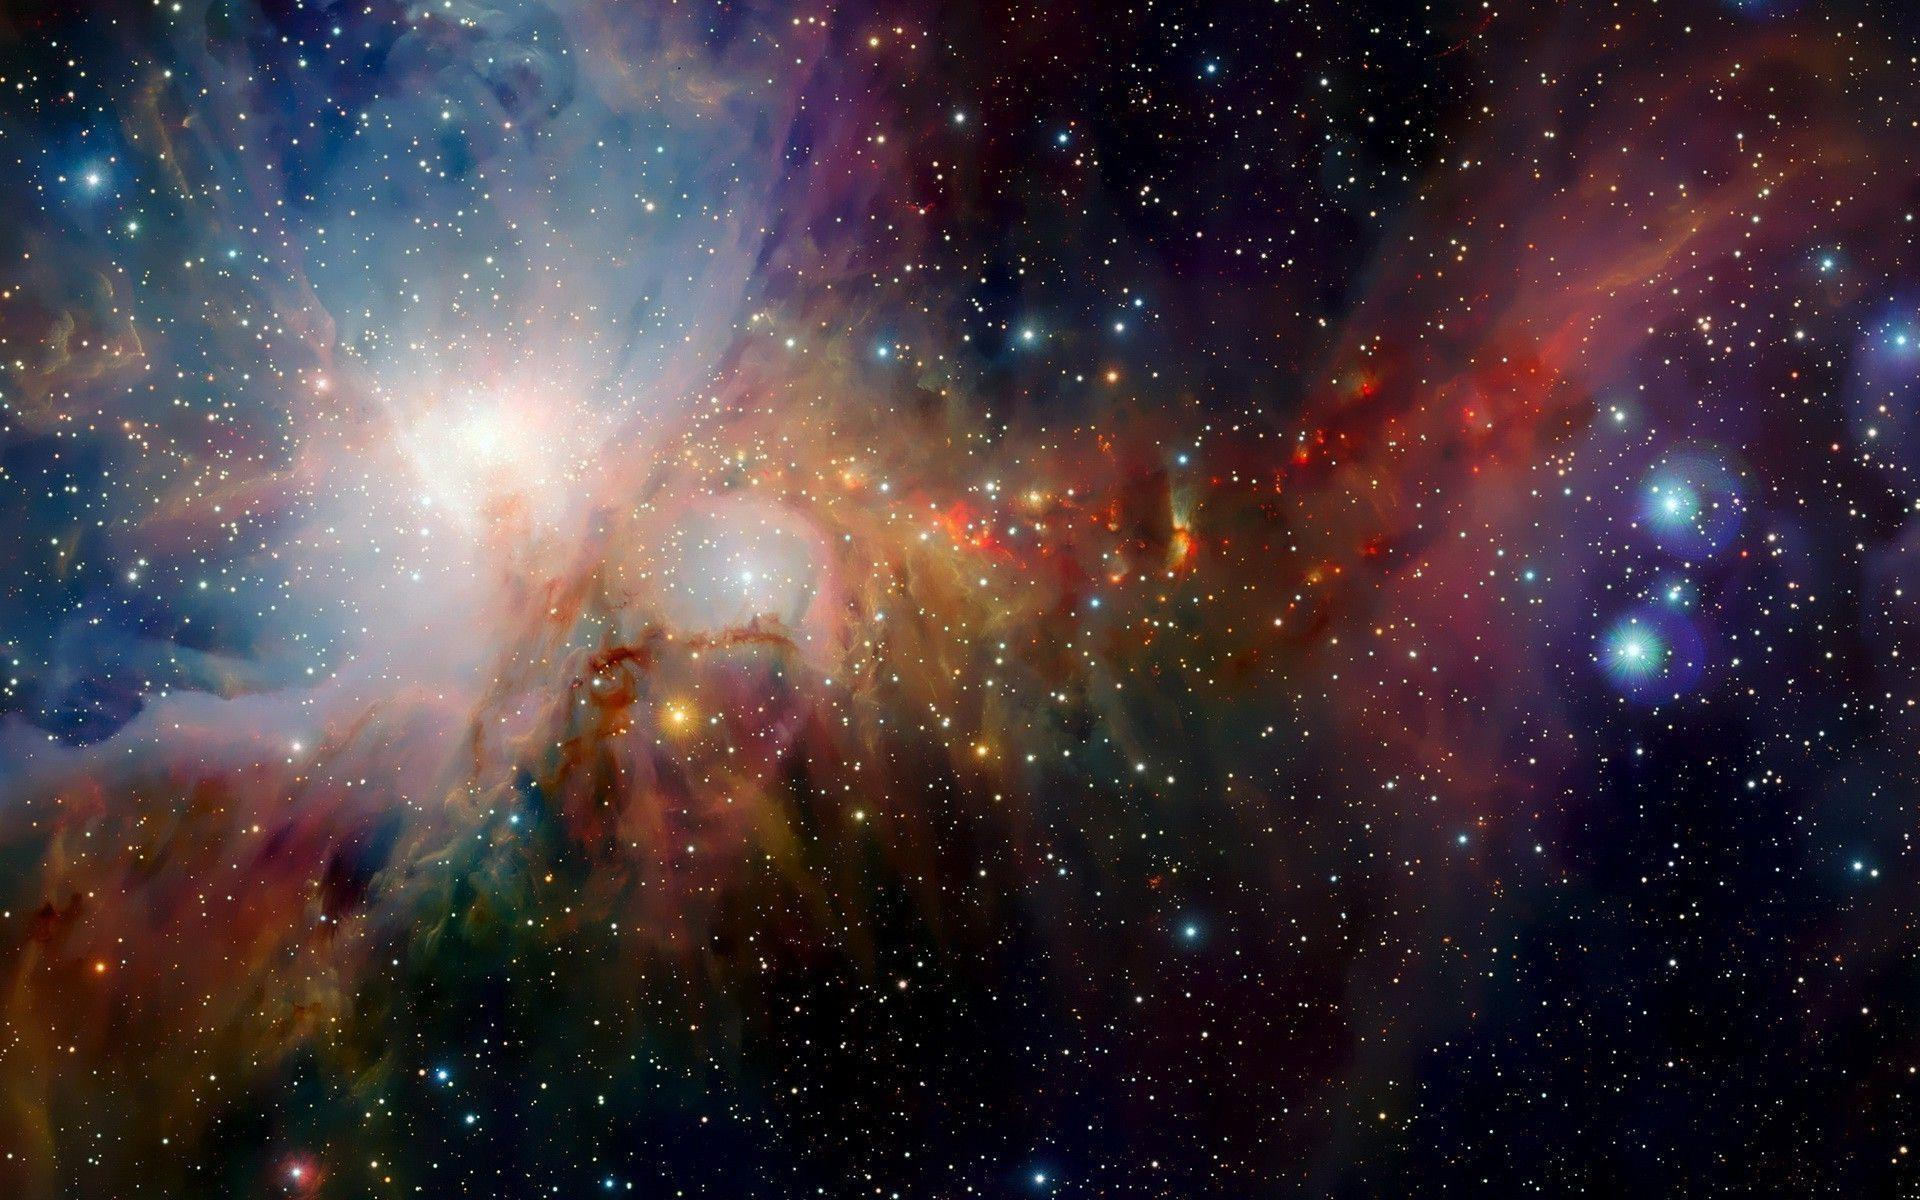 nebula hd wallpaper optical illusions - photo #6